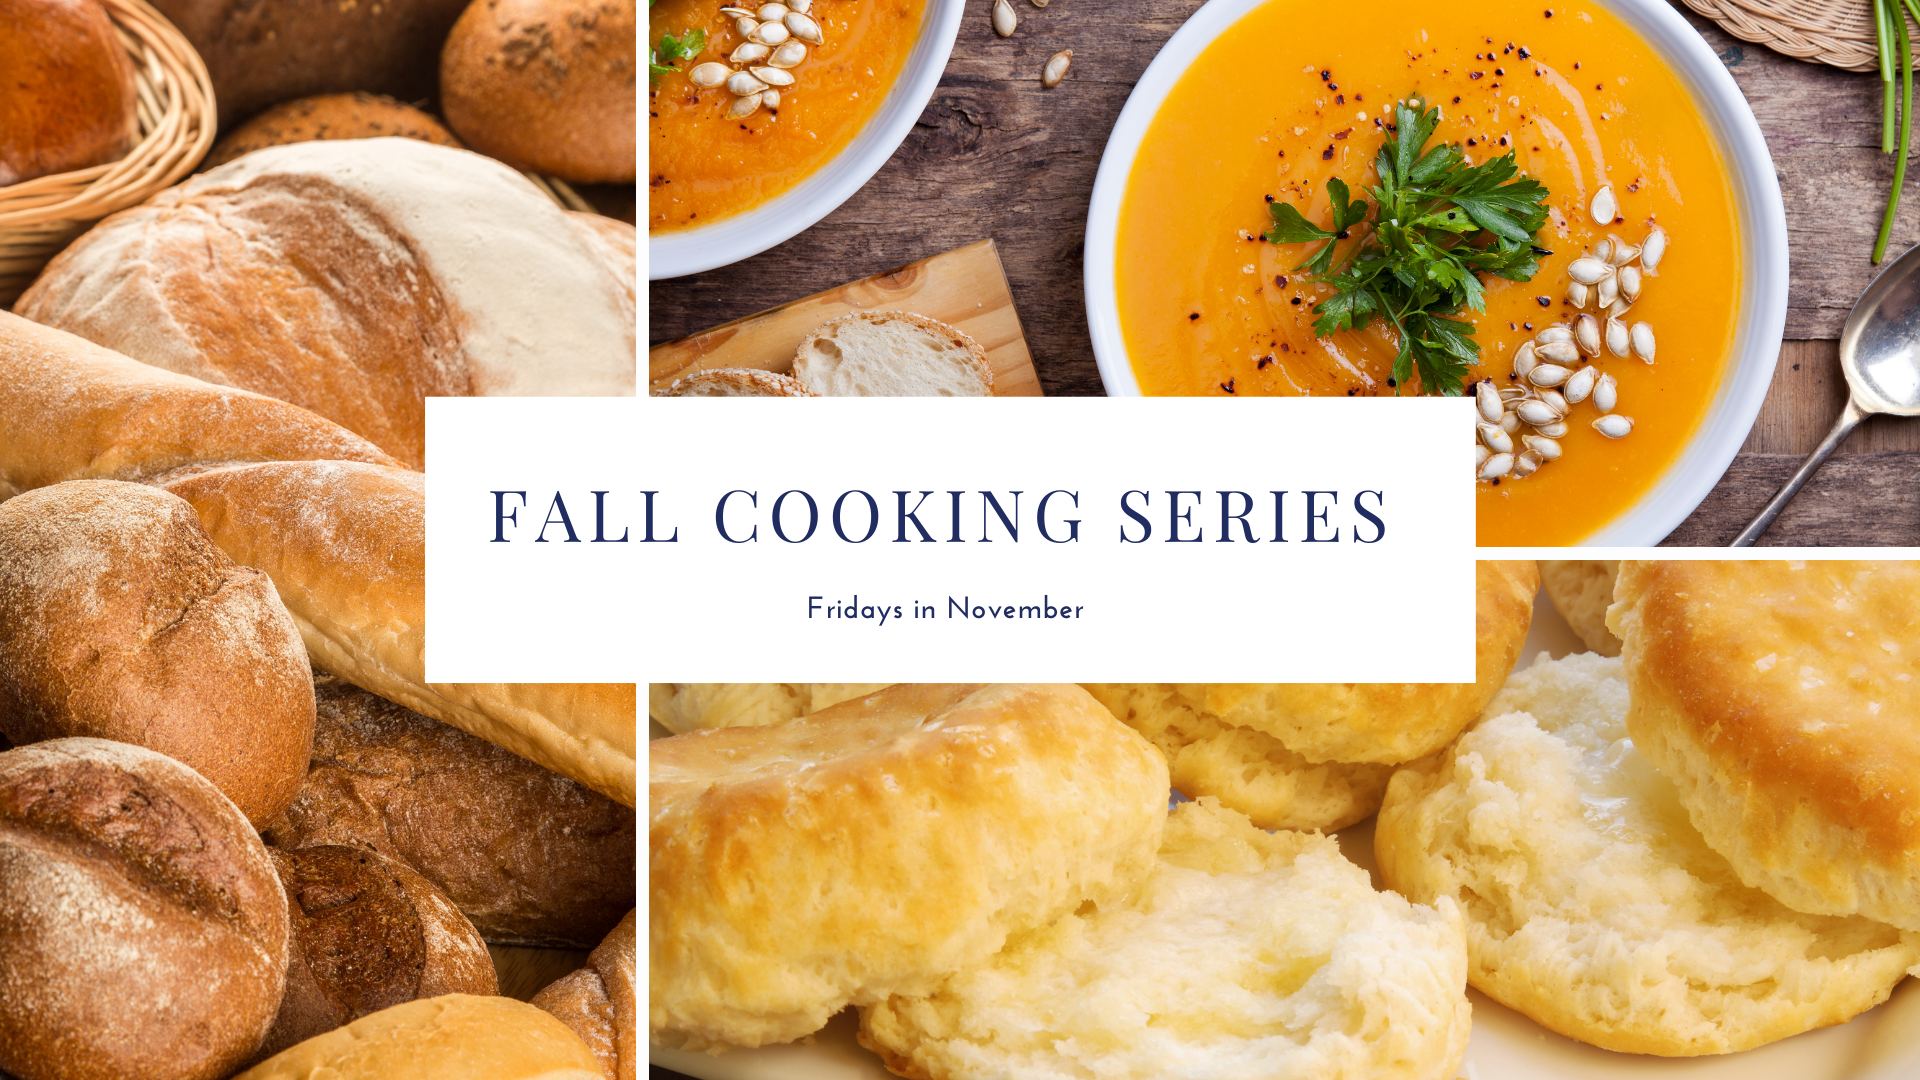 ad for fall cooking classes with biscuits and soup